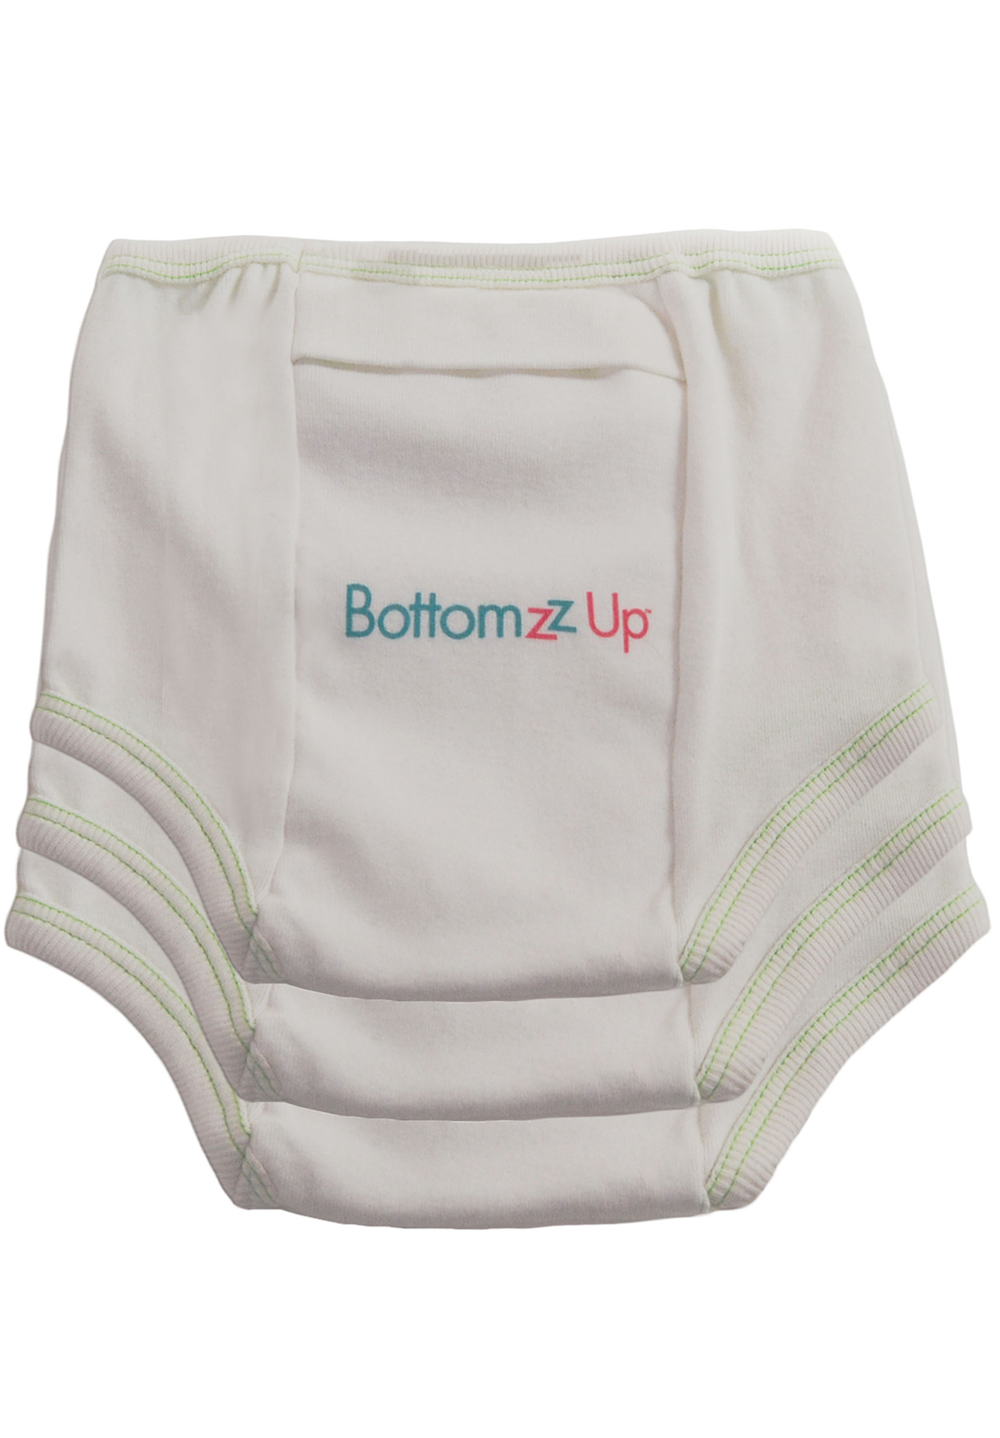 BottomZz Up Underwear     $47.45